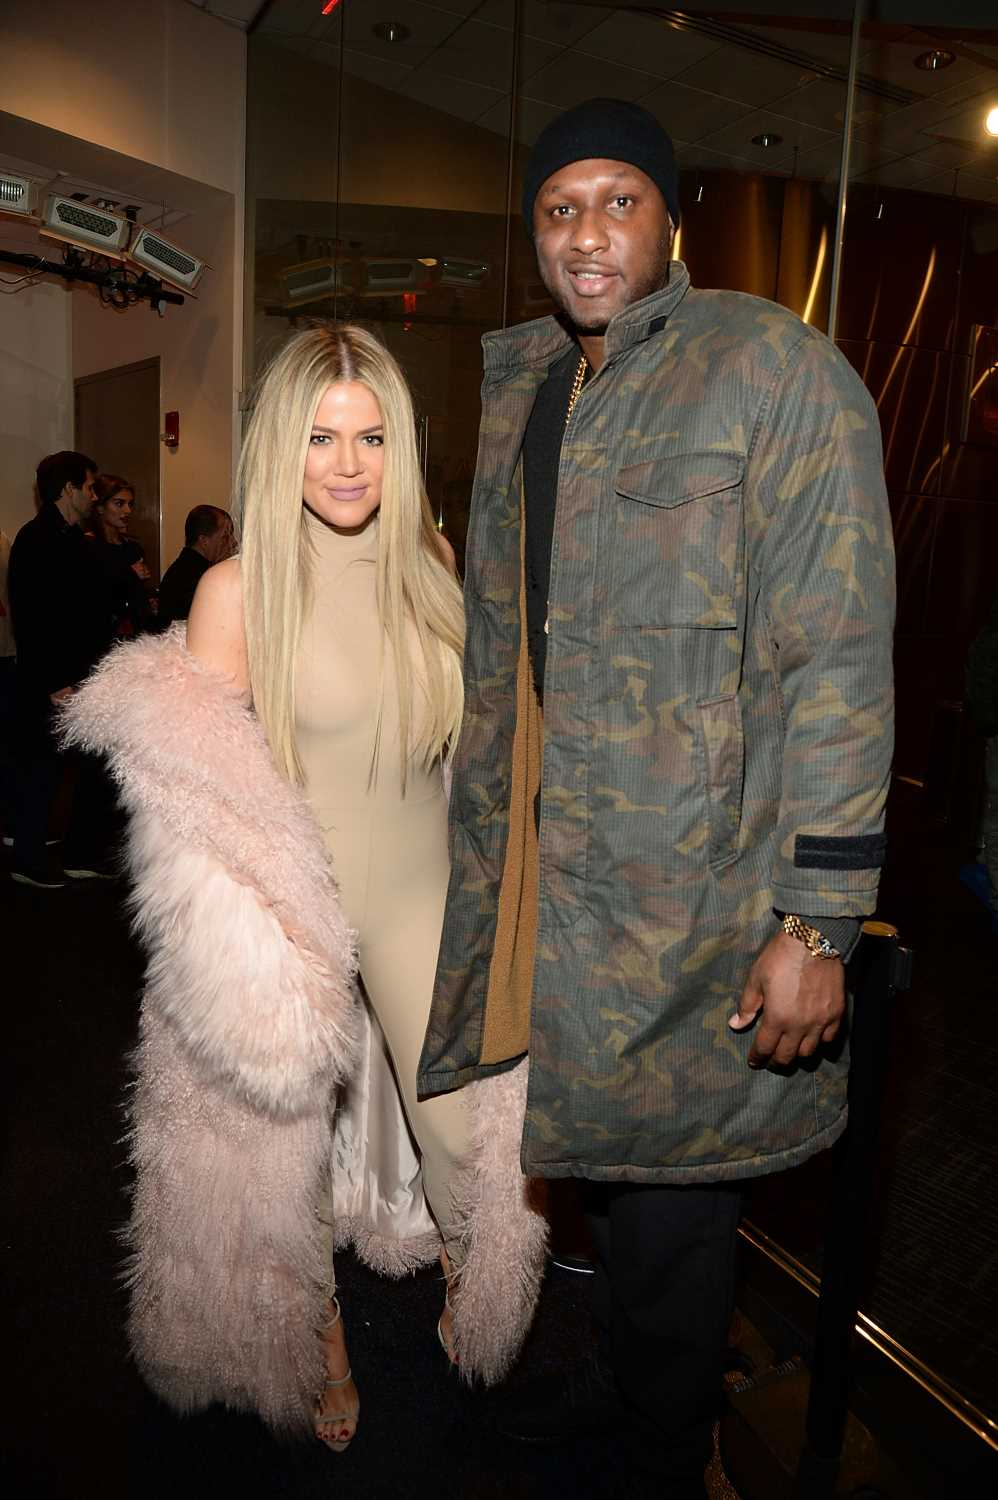 Lamar Odom Says Khloé Kardashian Is Still the Love of His Life: 'I Wake Up Hoping' There's a Chance